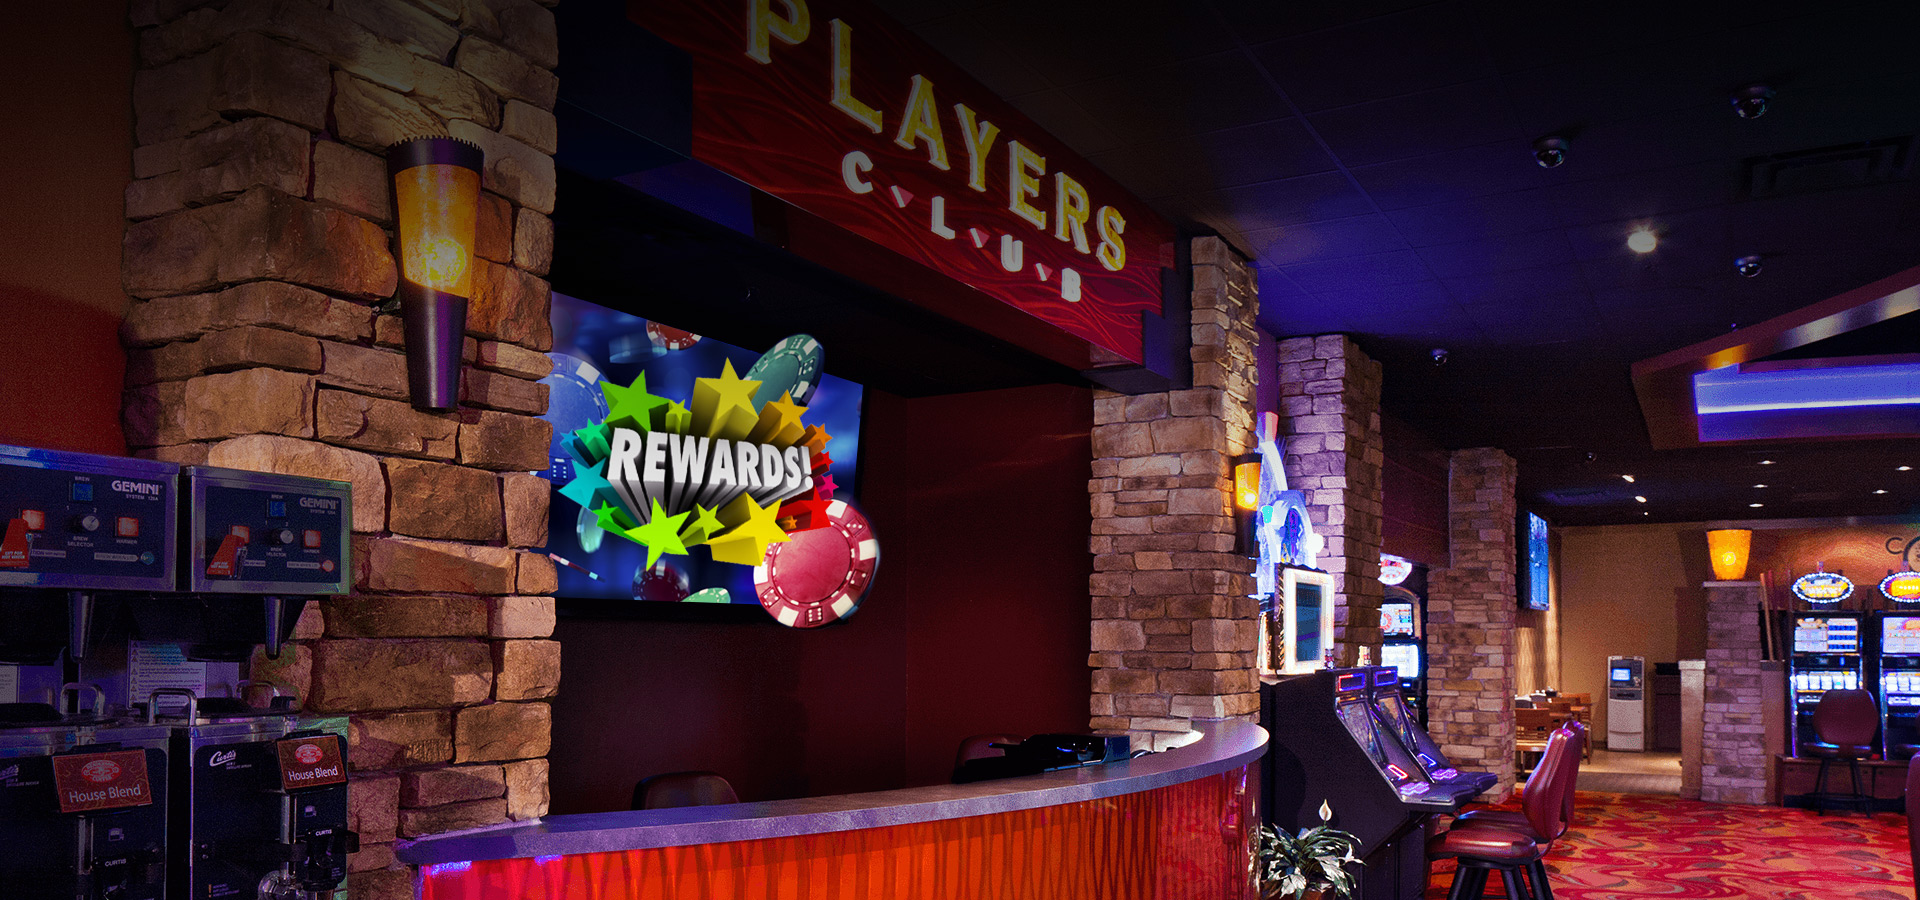 https://www.magnetic3d.com/wp-content/uploads/2019/02/Markets_Casinos_PlayerRewards.jpg